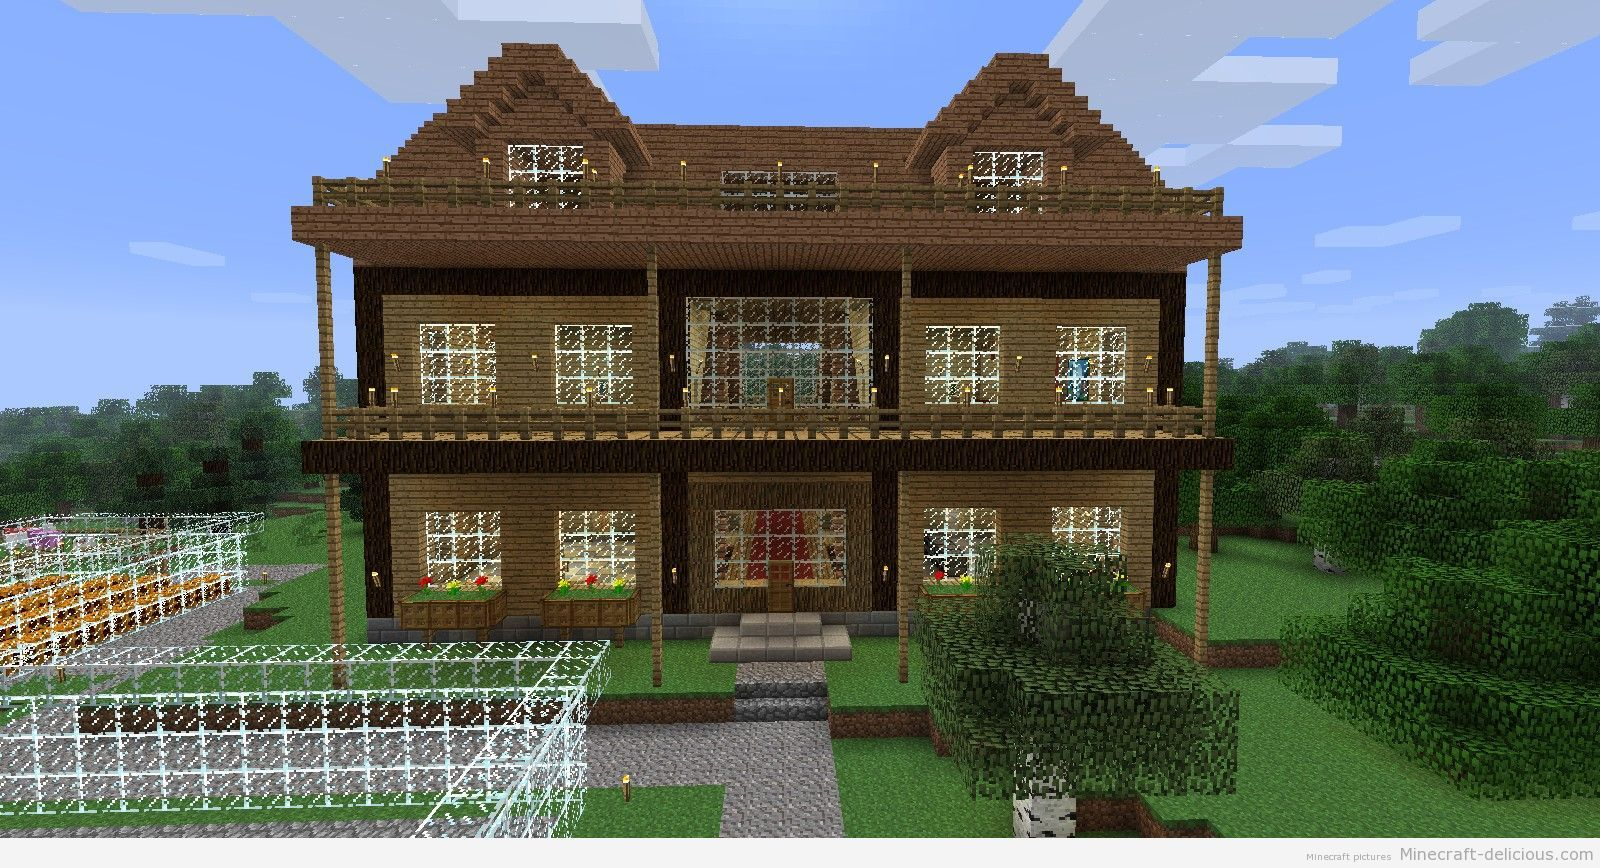 1000+ images about Minecraft on Pinterest - ^